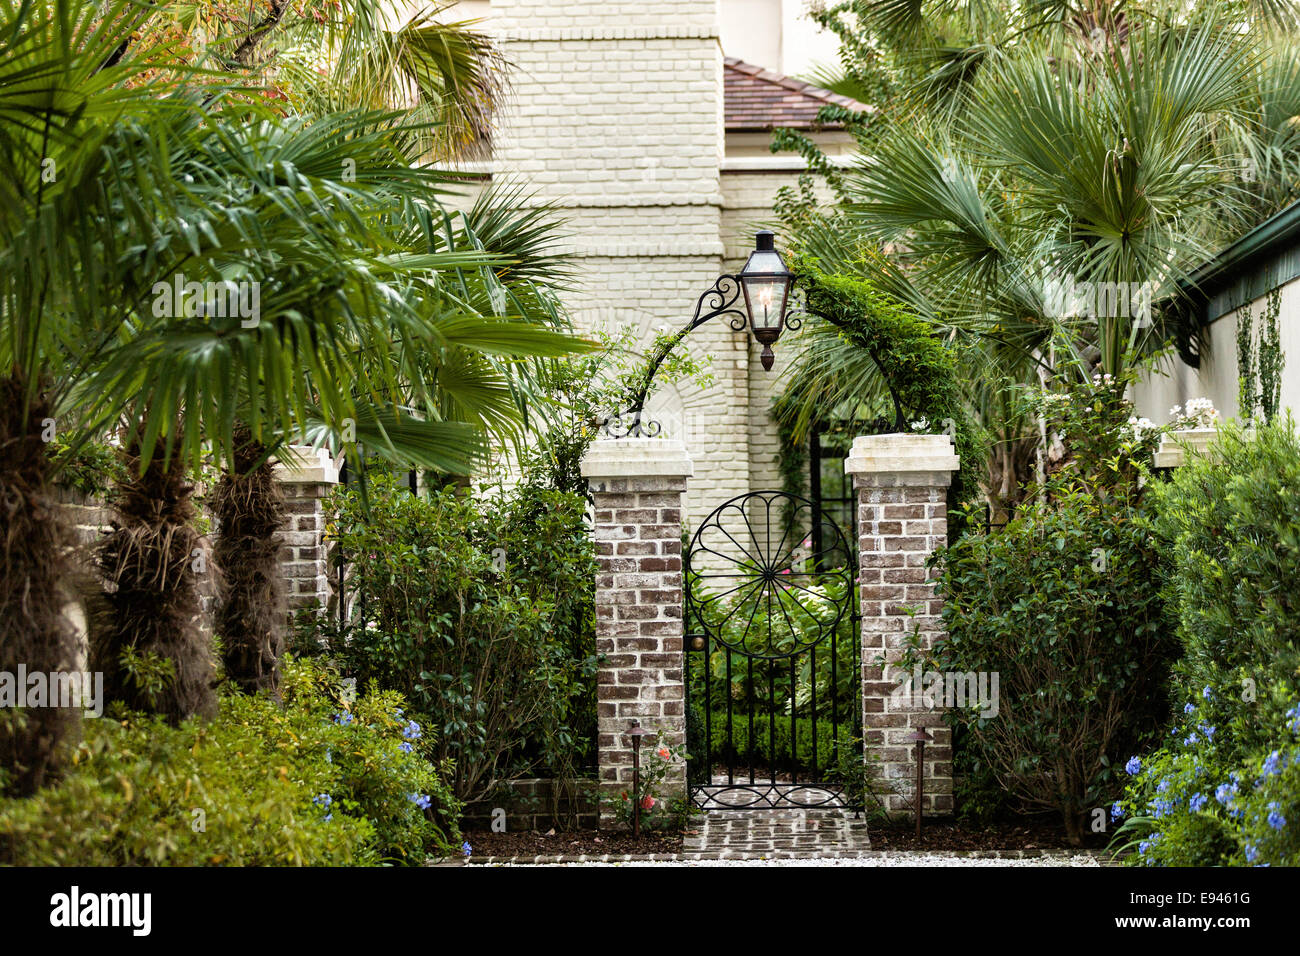 A private garden gate and old wall with palm trees in the